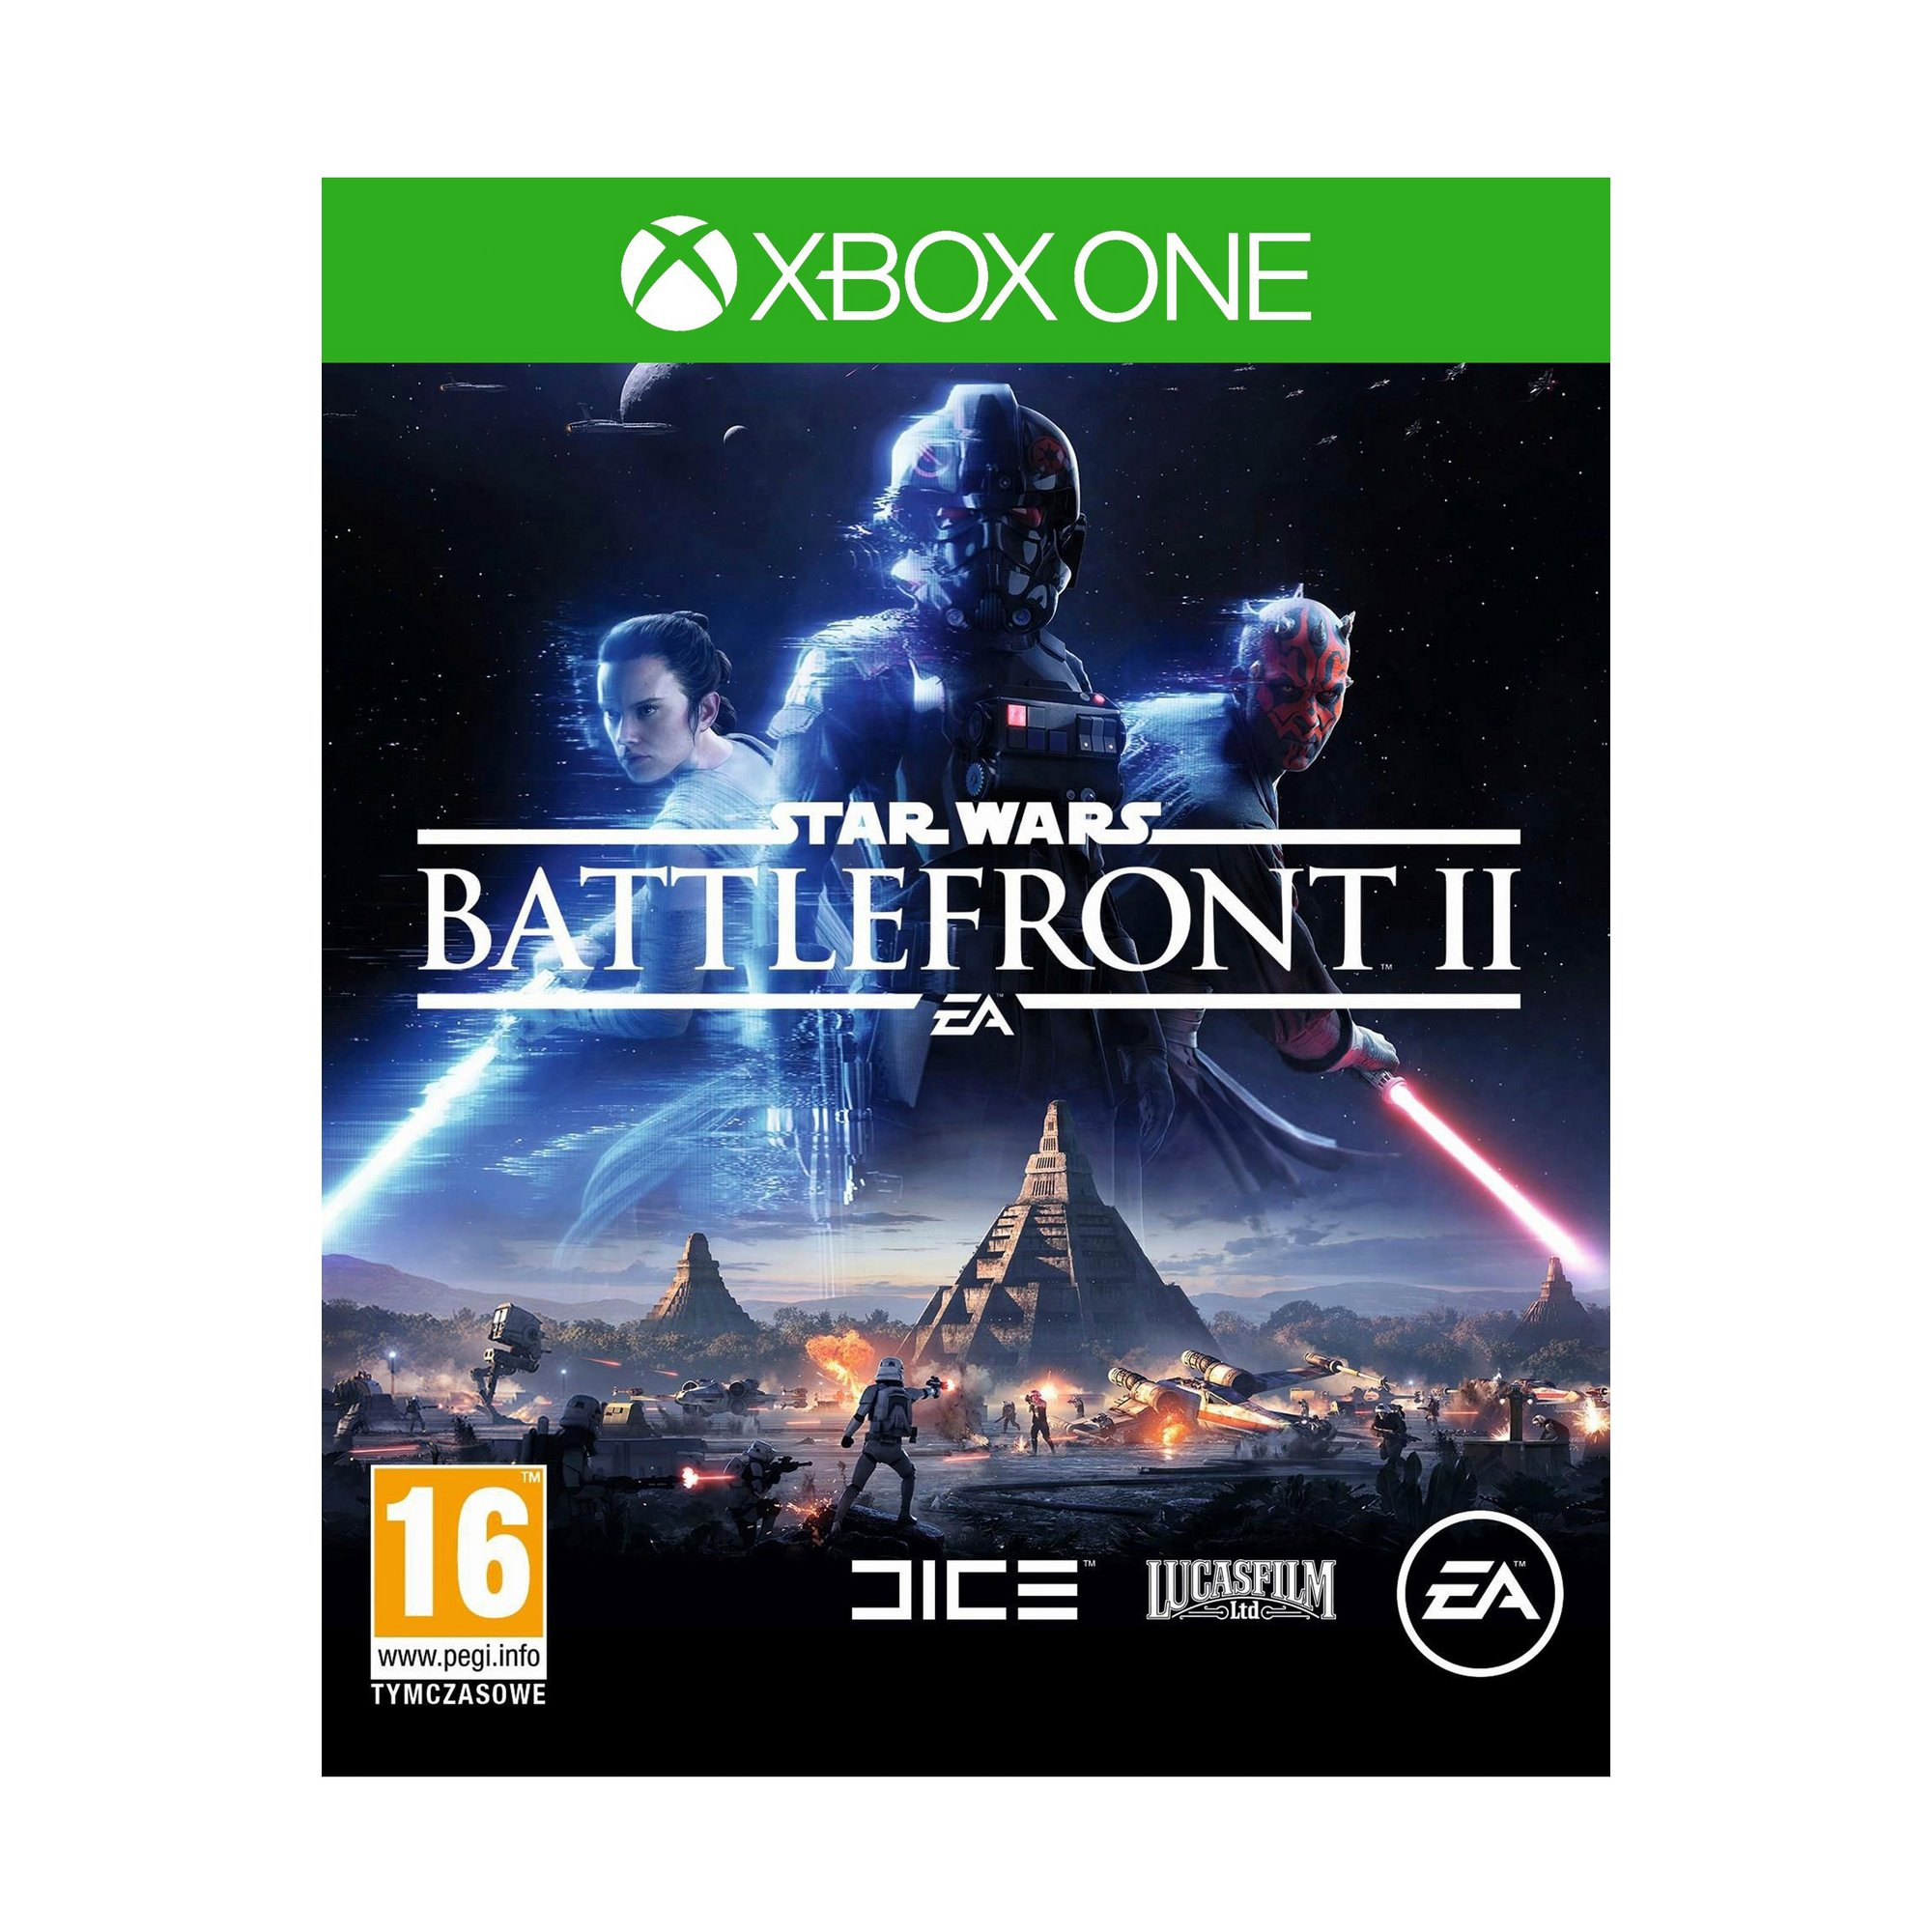 Image of Xbox One: Star Wars Battlefront II